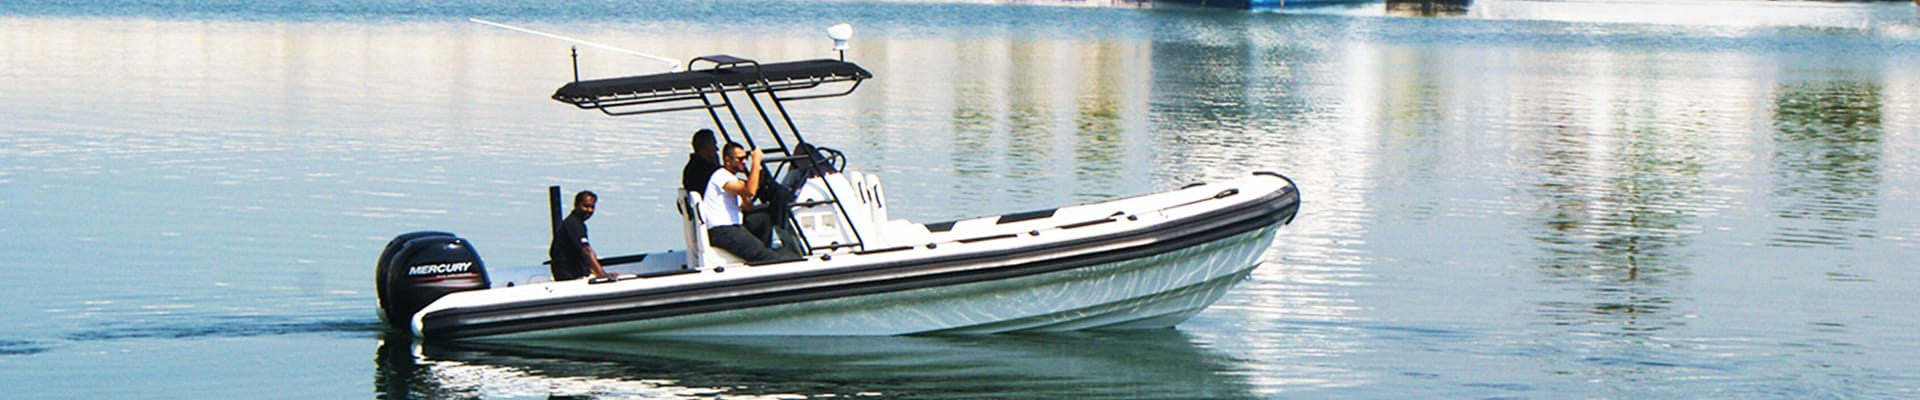 customized-rigid-inflatable-boat